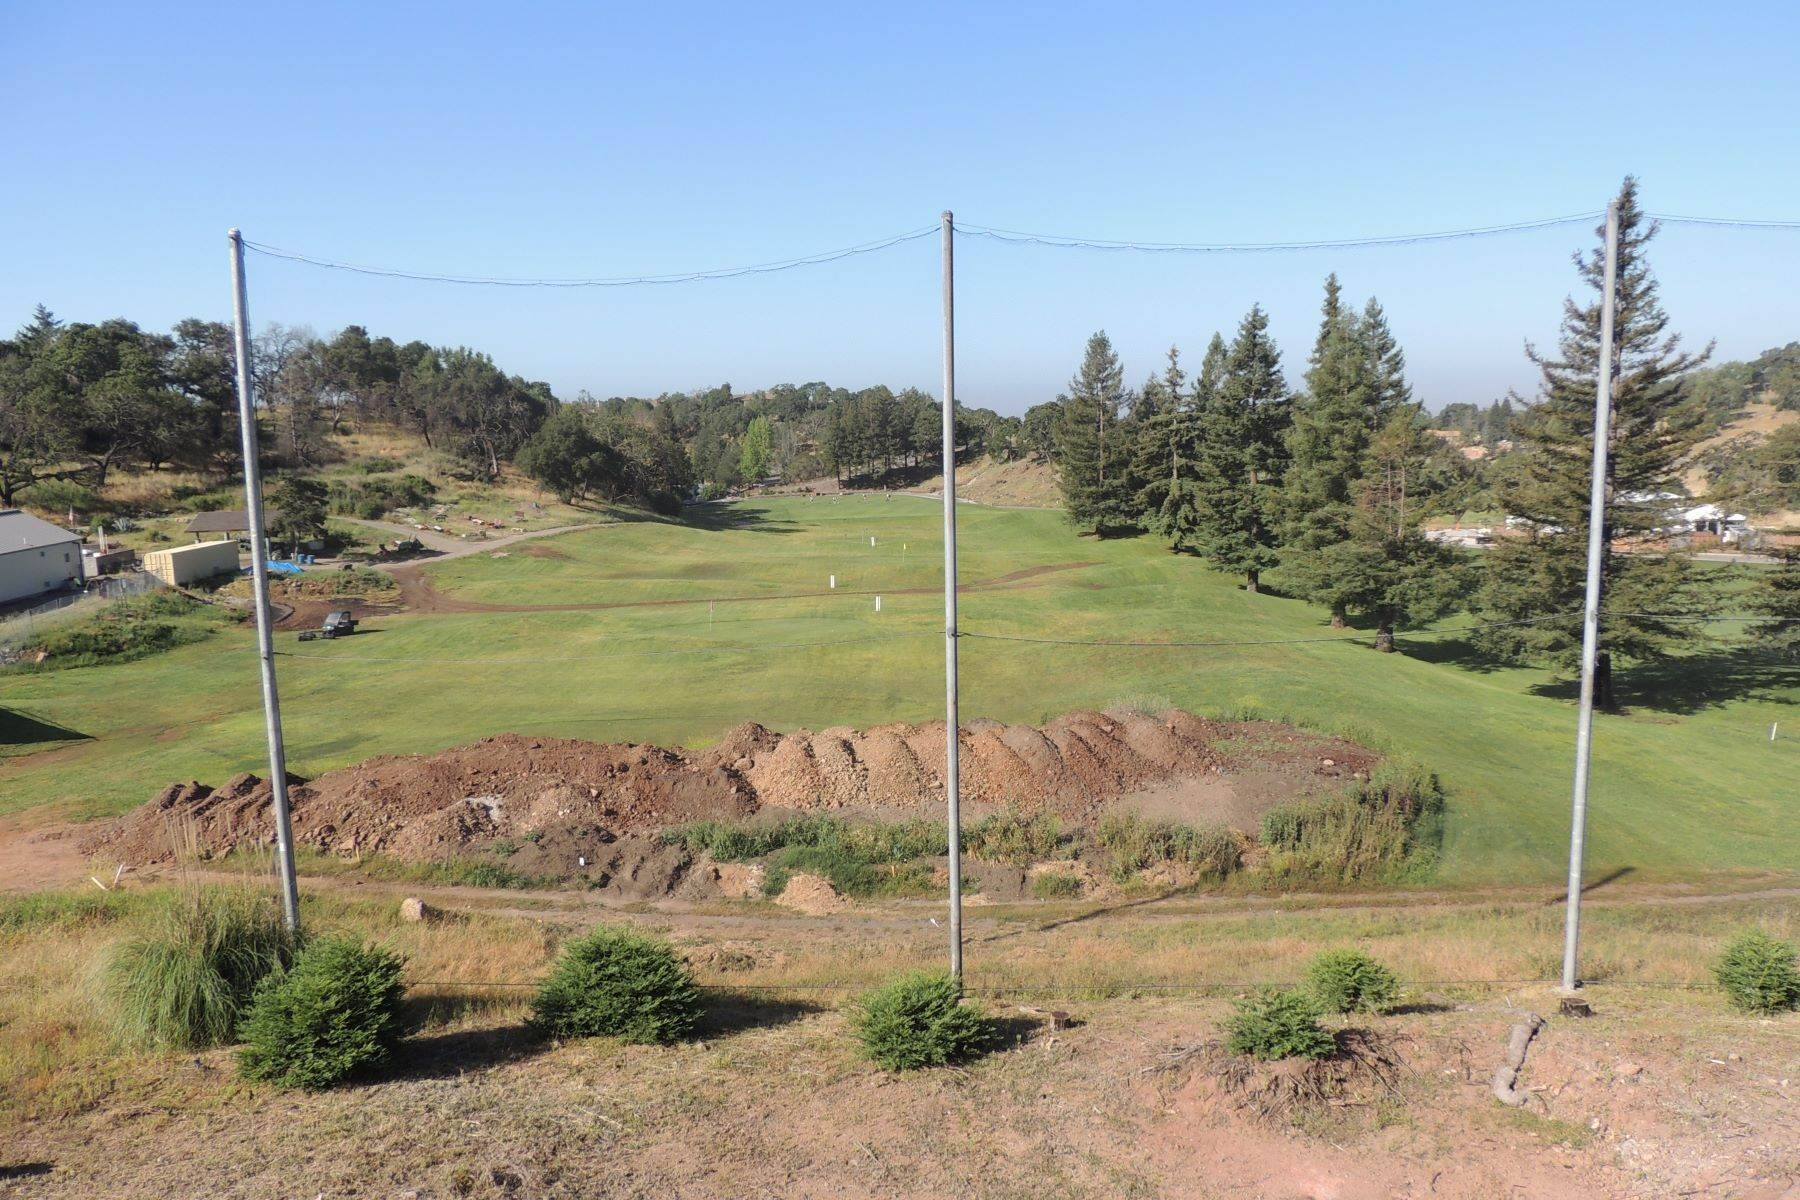 2. Land for Sale at Desirable Fountaingrove Lot 5712 Fairway Knoll Ln Santa Rosa, California 95403 United States